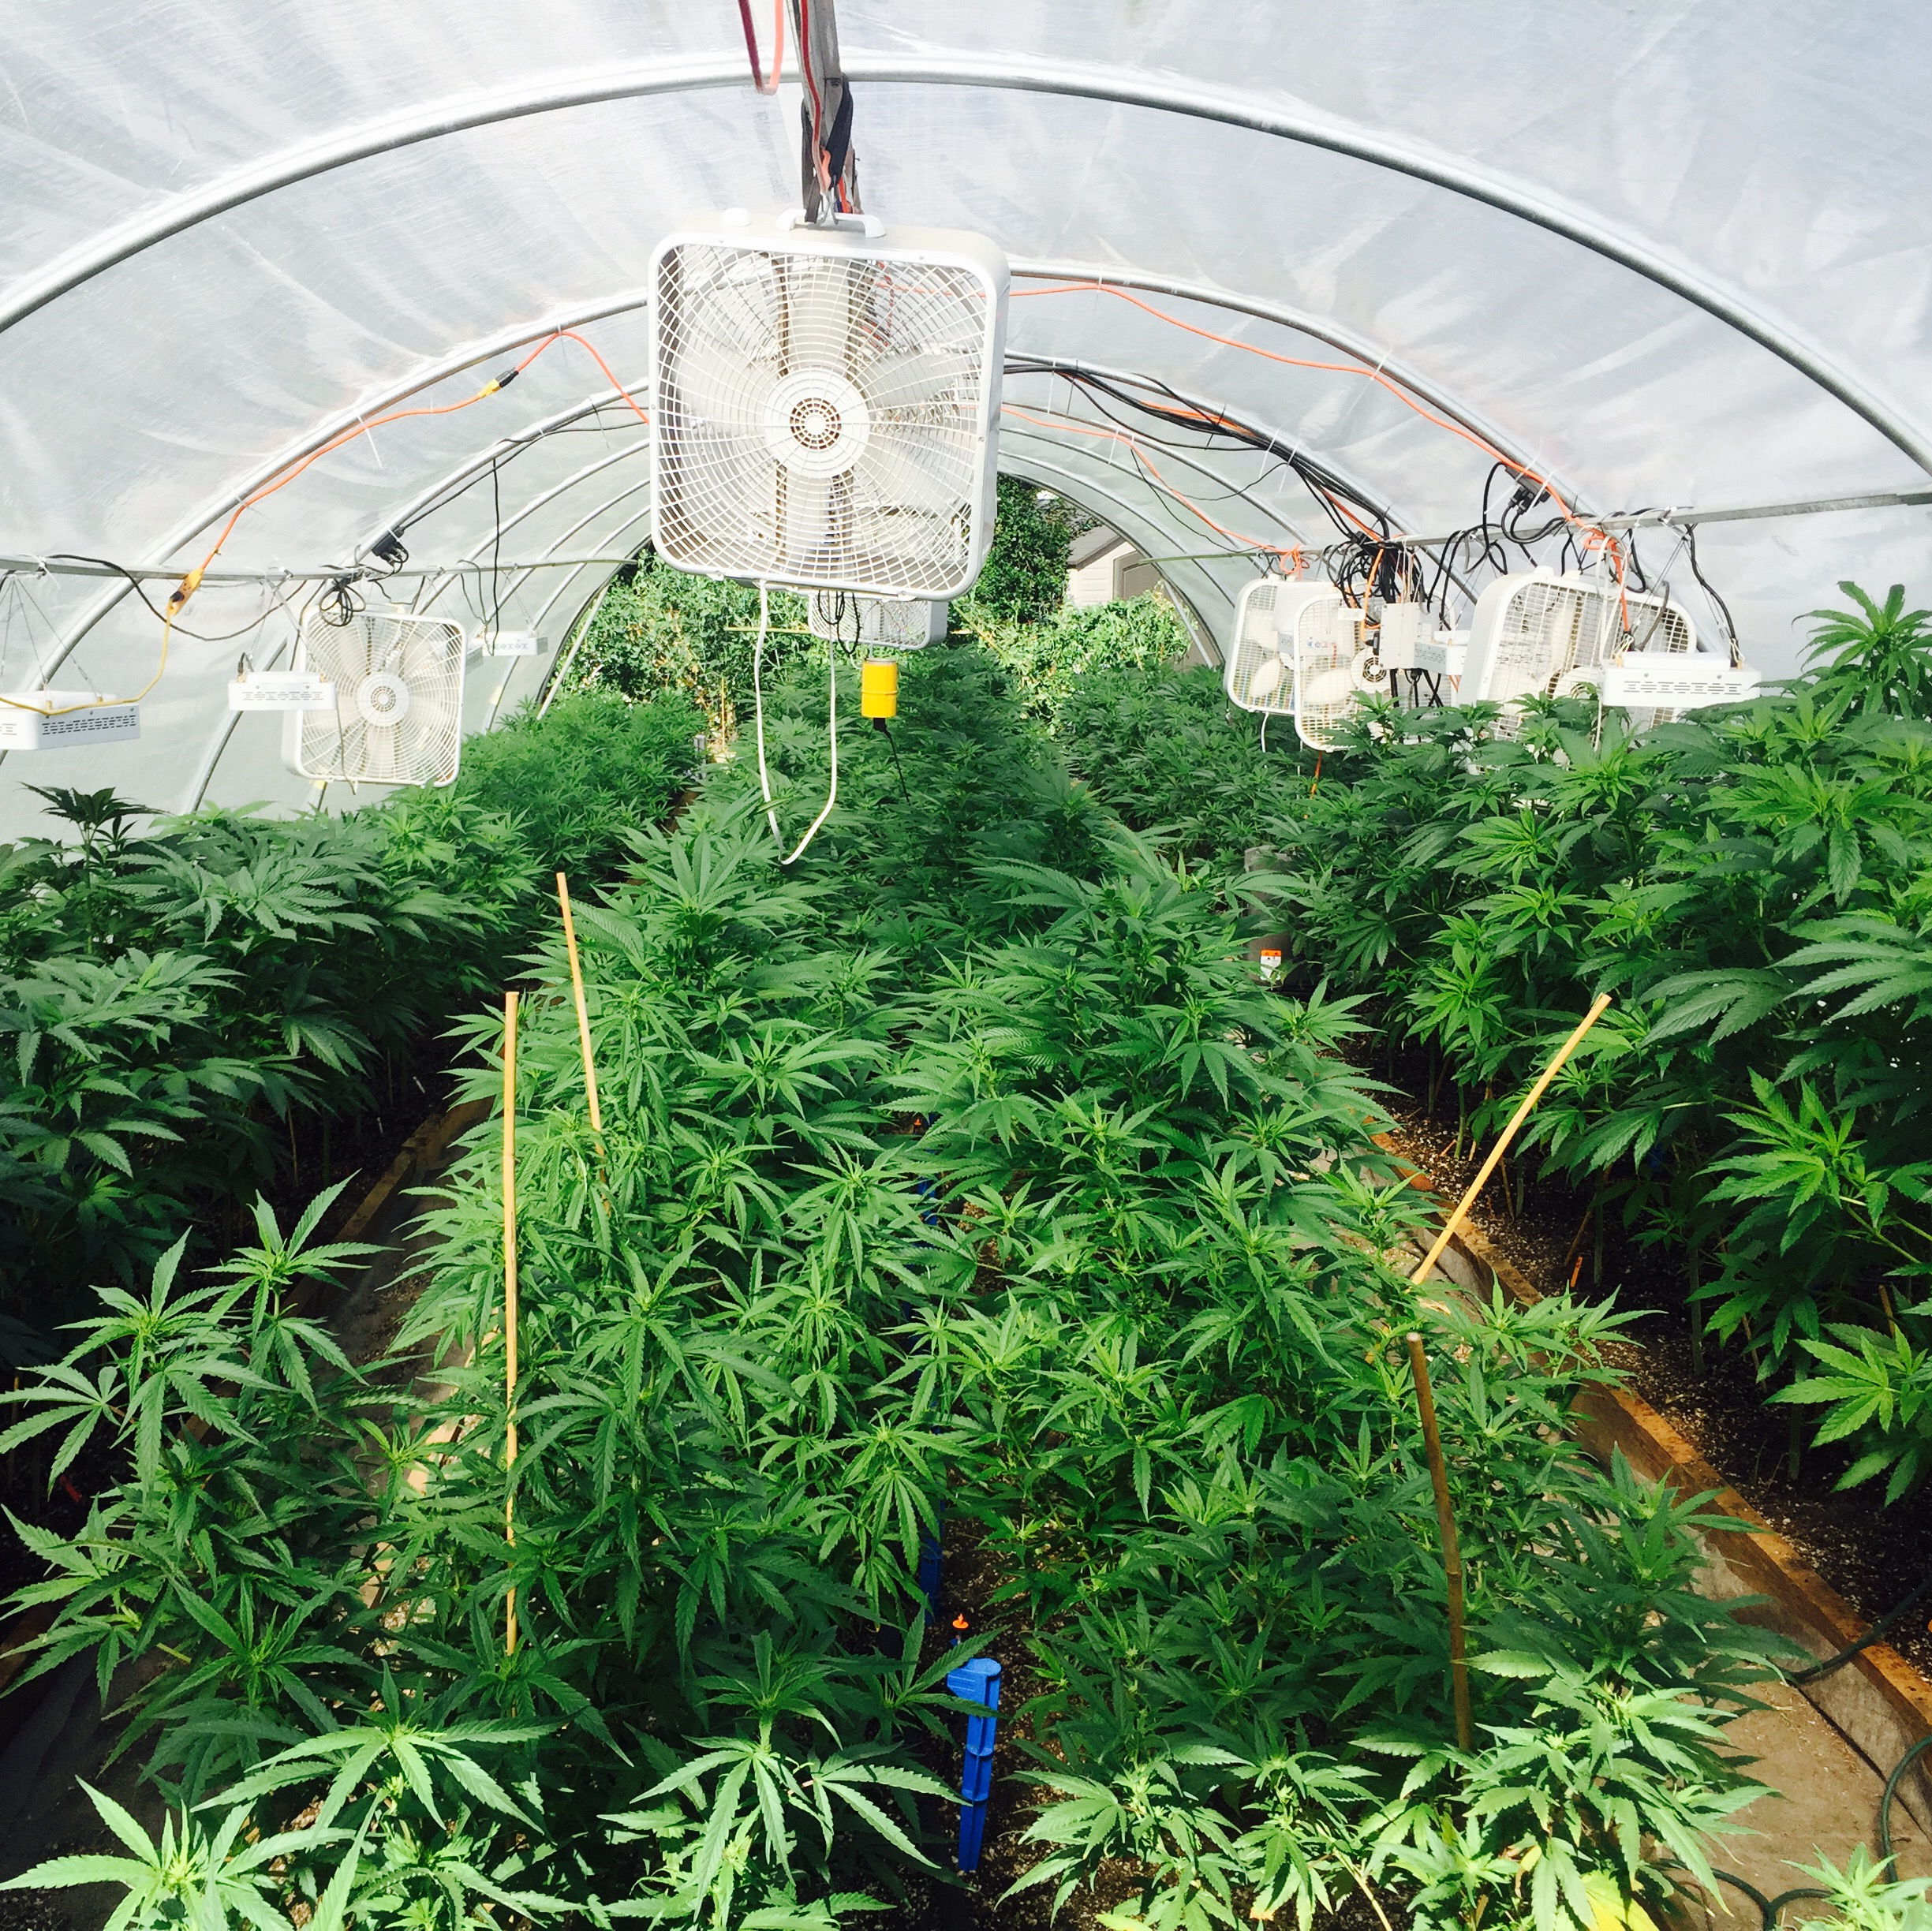 Vegetative Plants in Soil Beds  (Photo courtesy of Cannabis Horticultural Association)